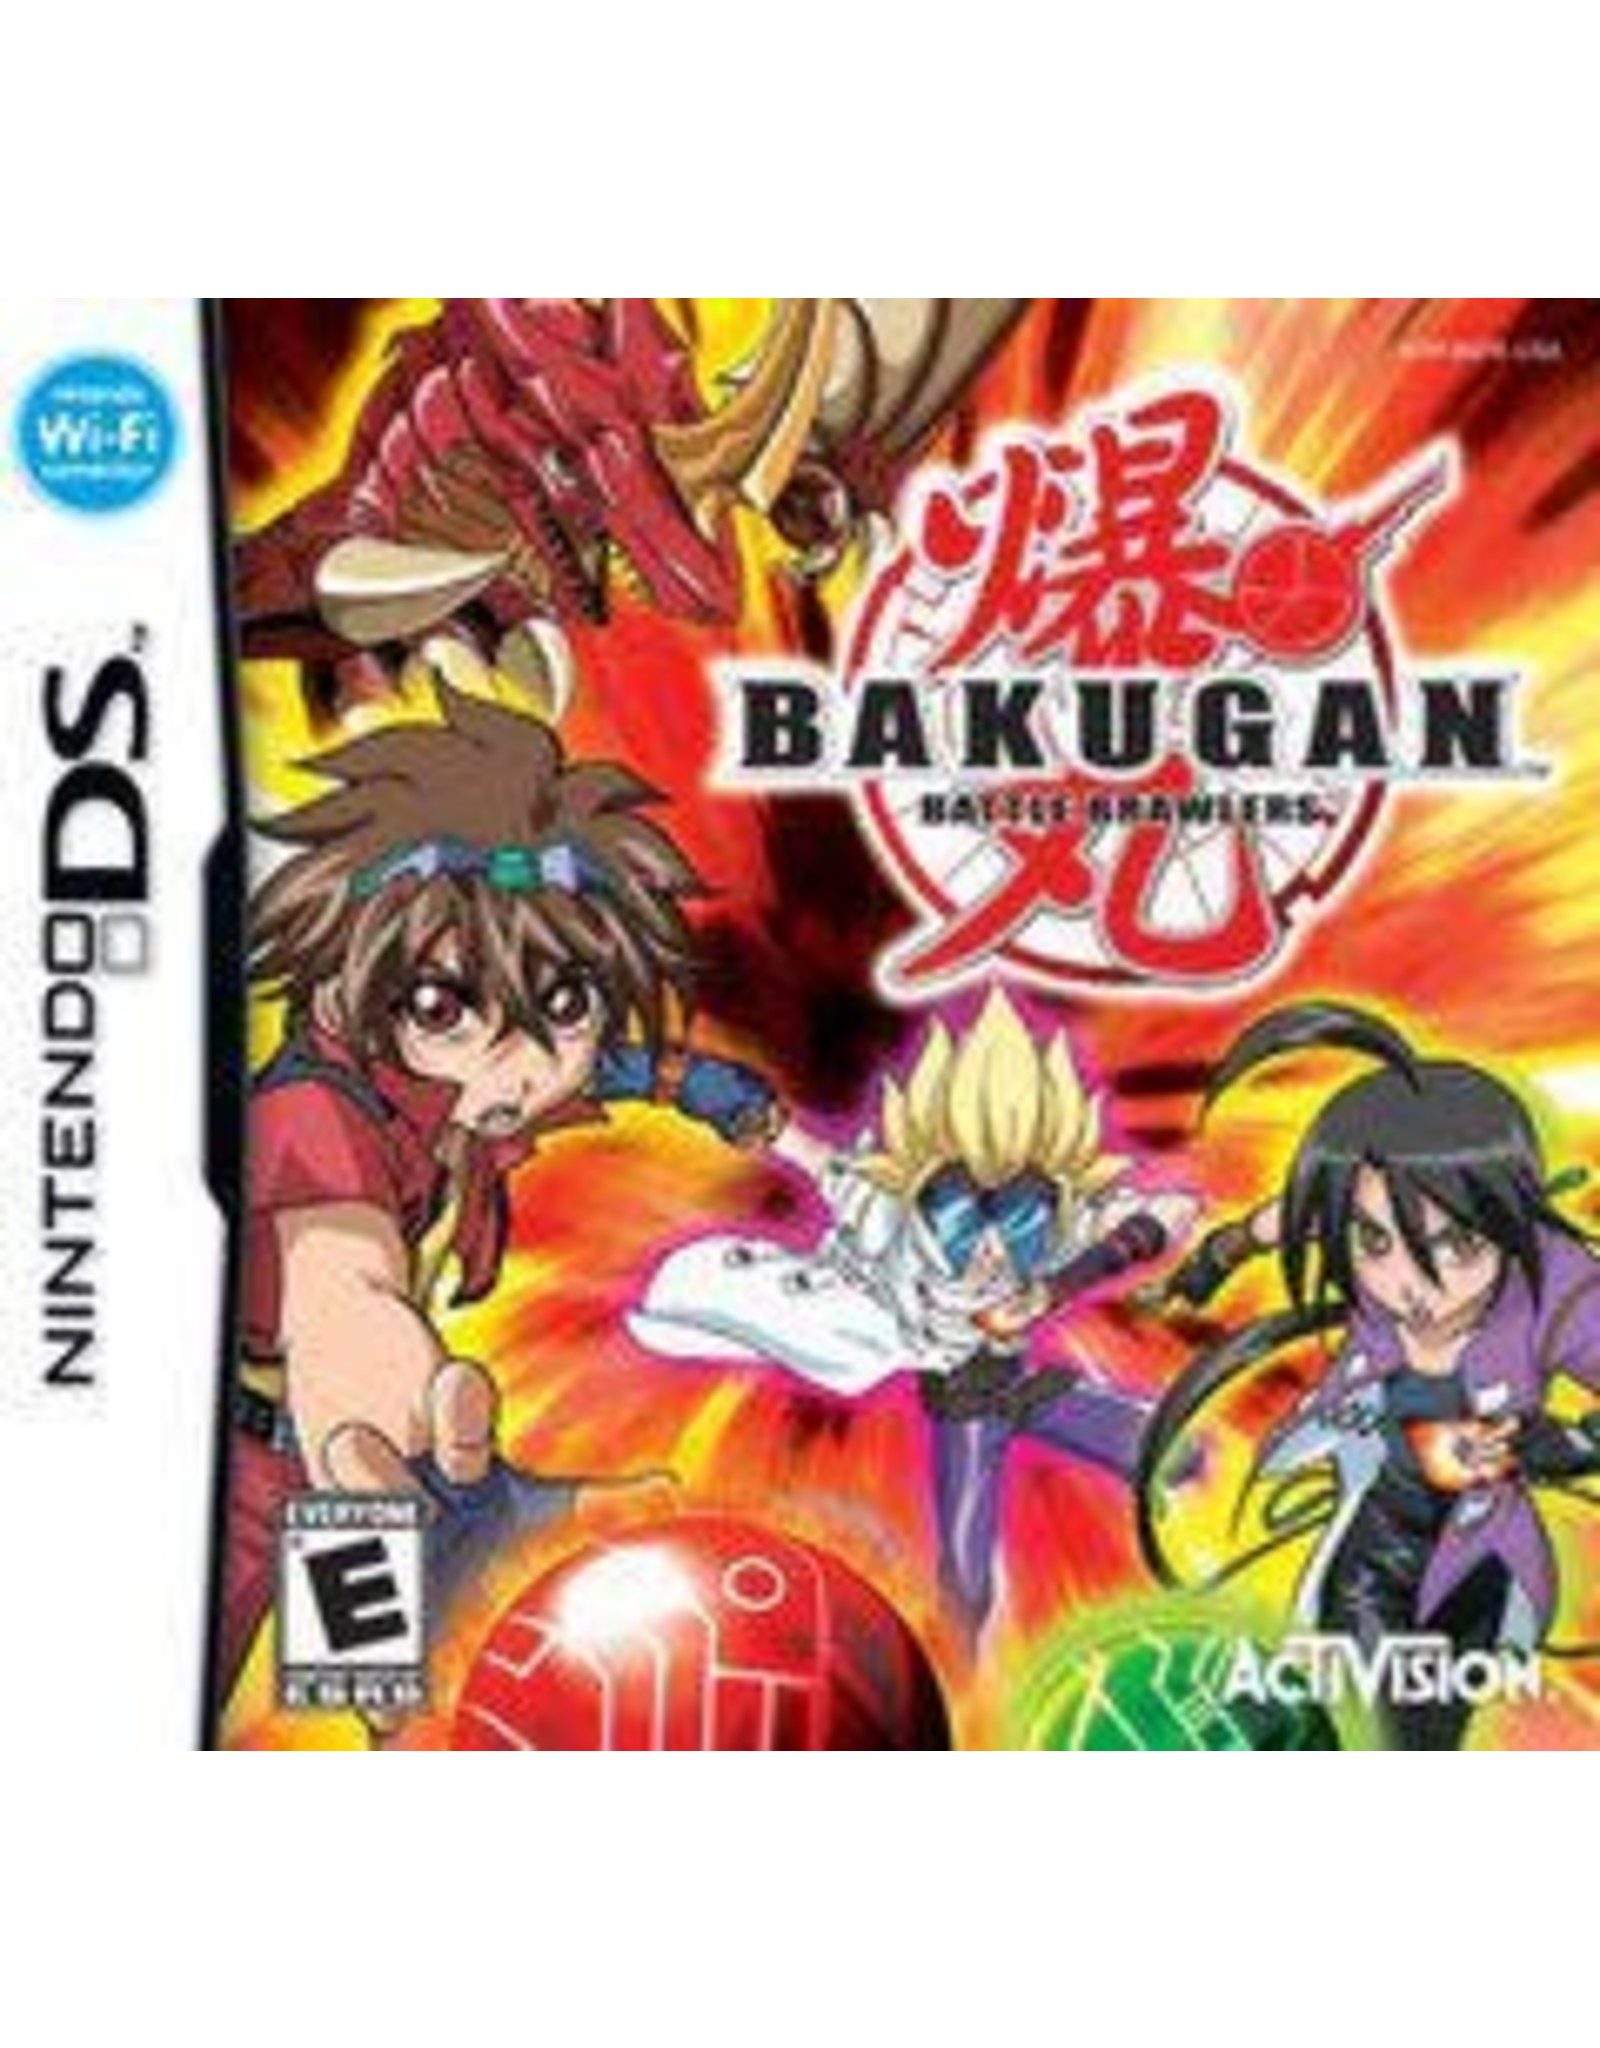 Nintendo DS Bakugan Battle Brawlers (CiB)